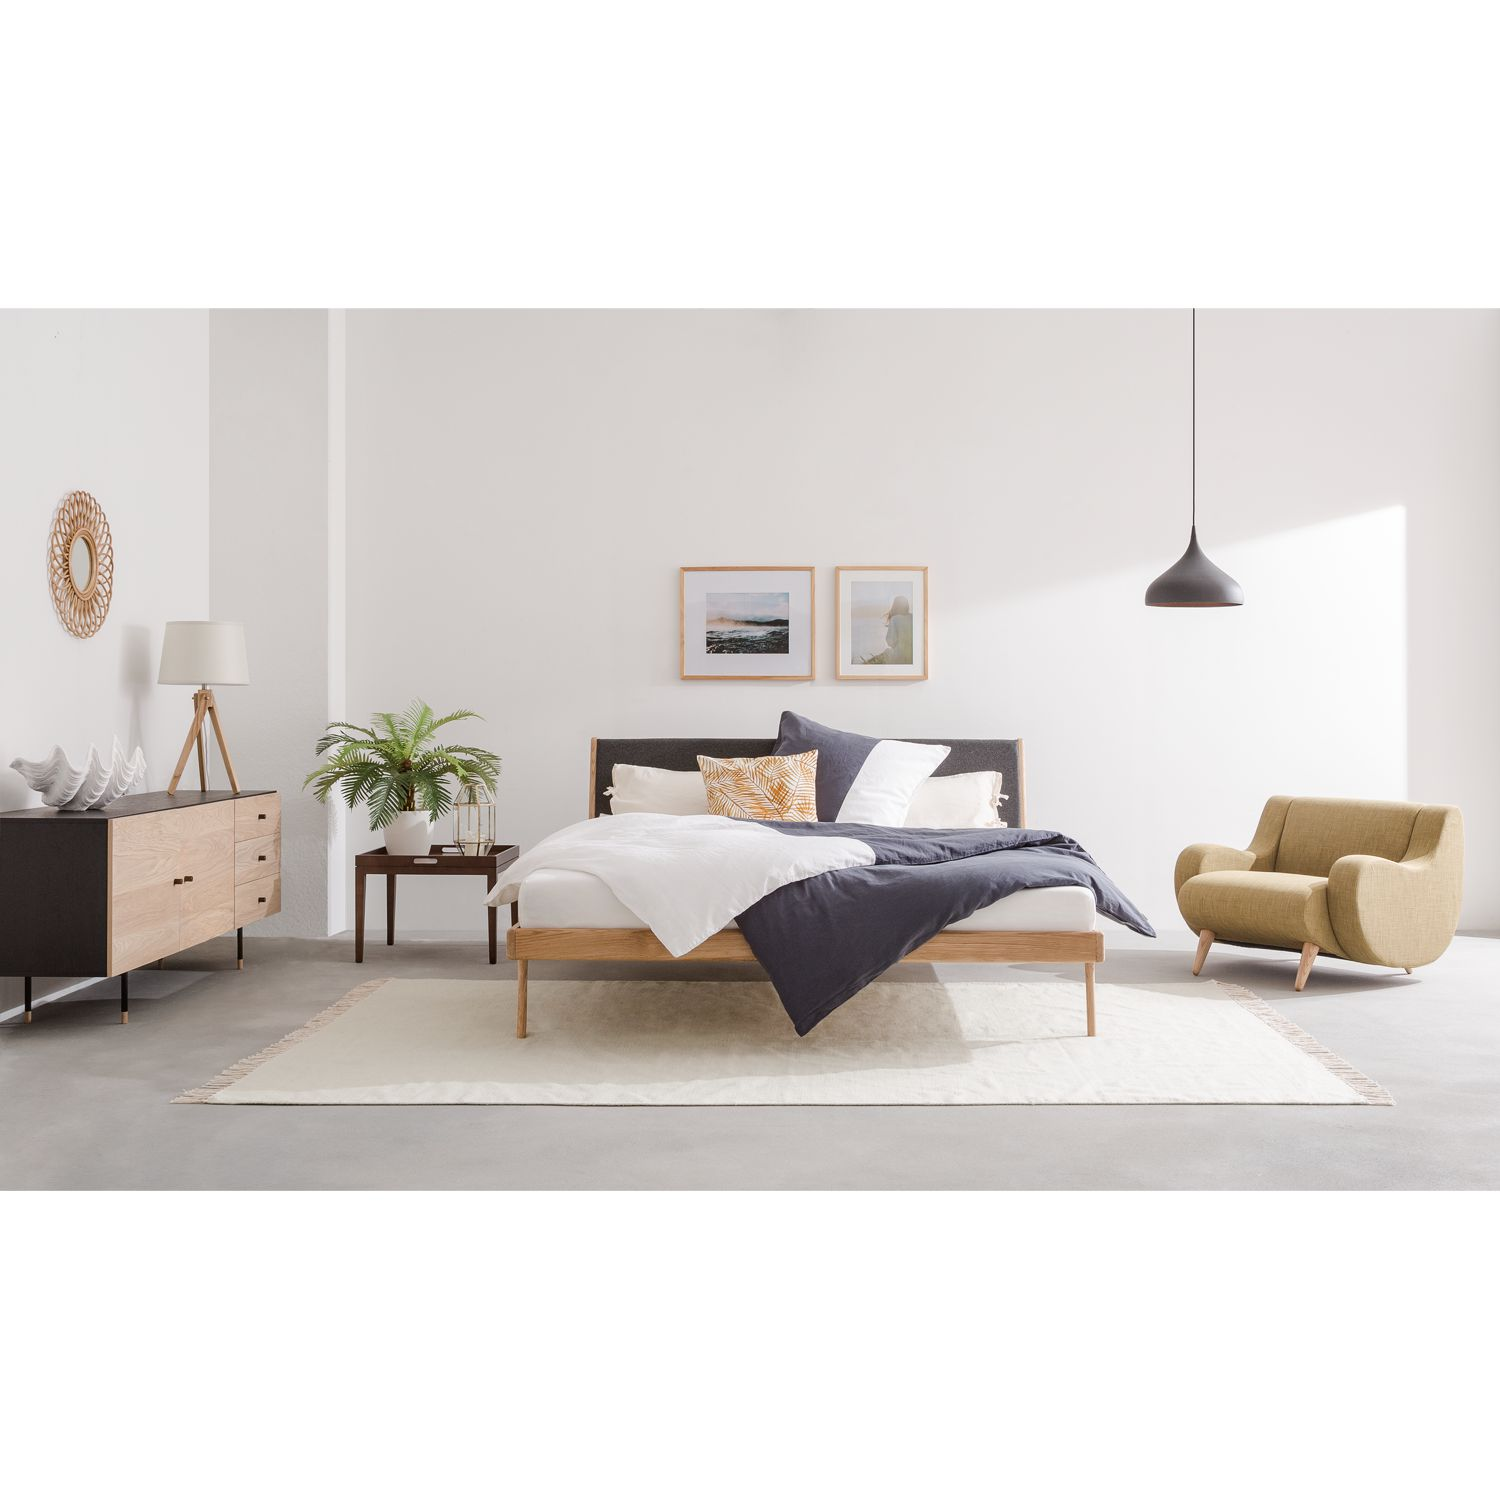 Home24 Dressoir Peeri, Moerteens